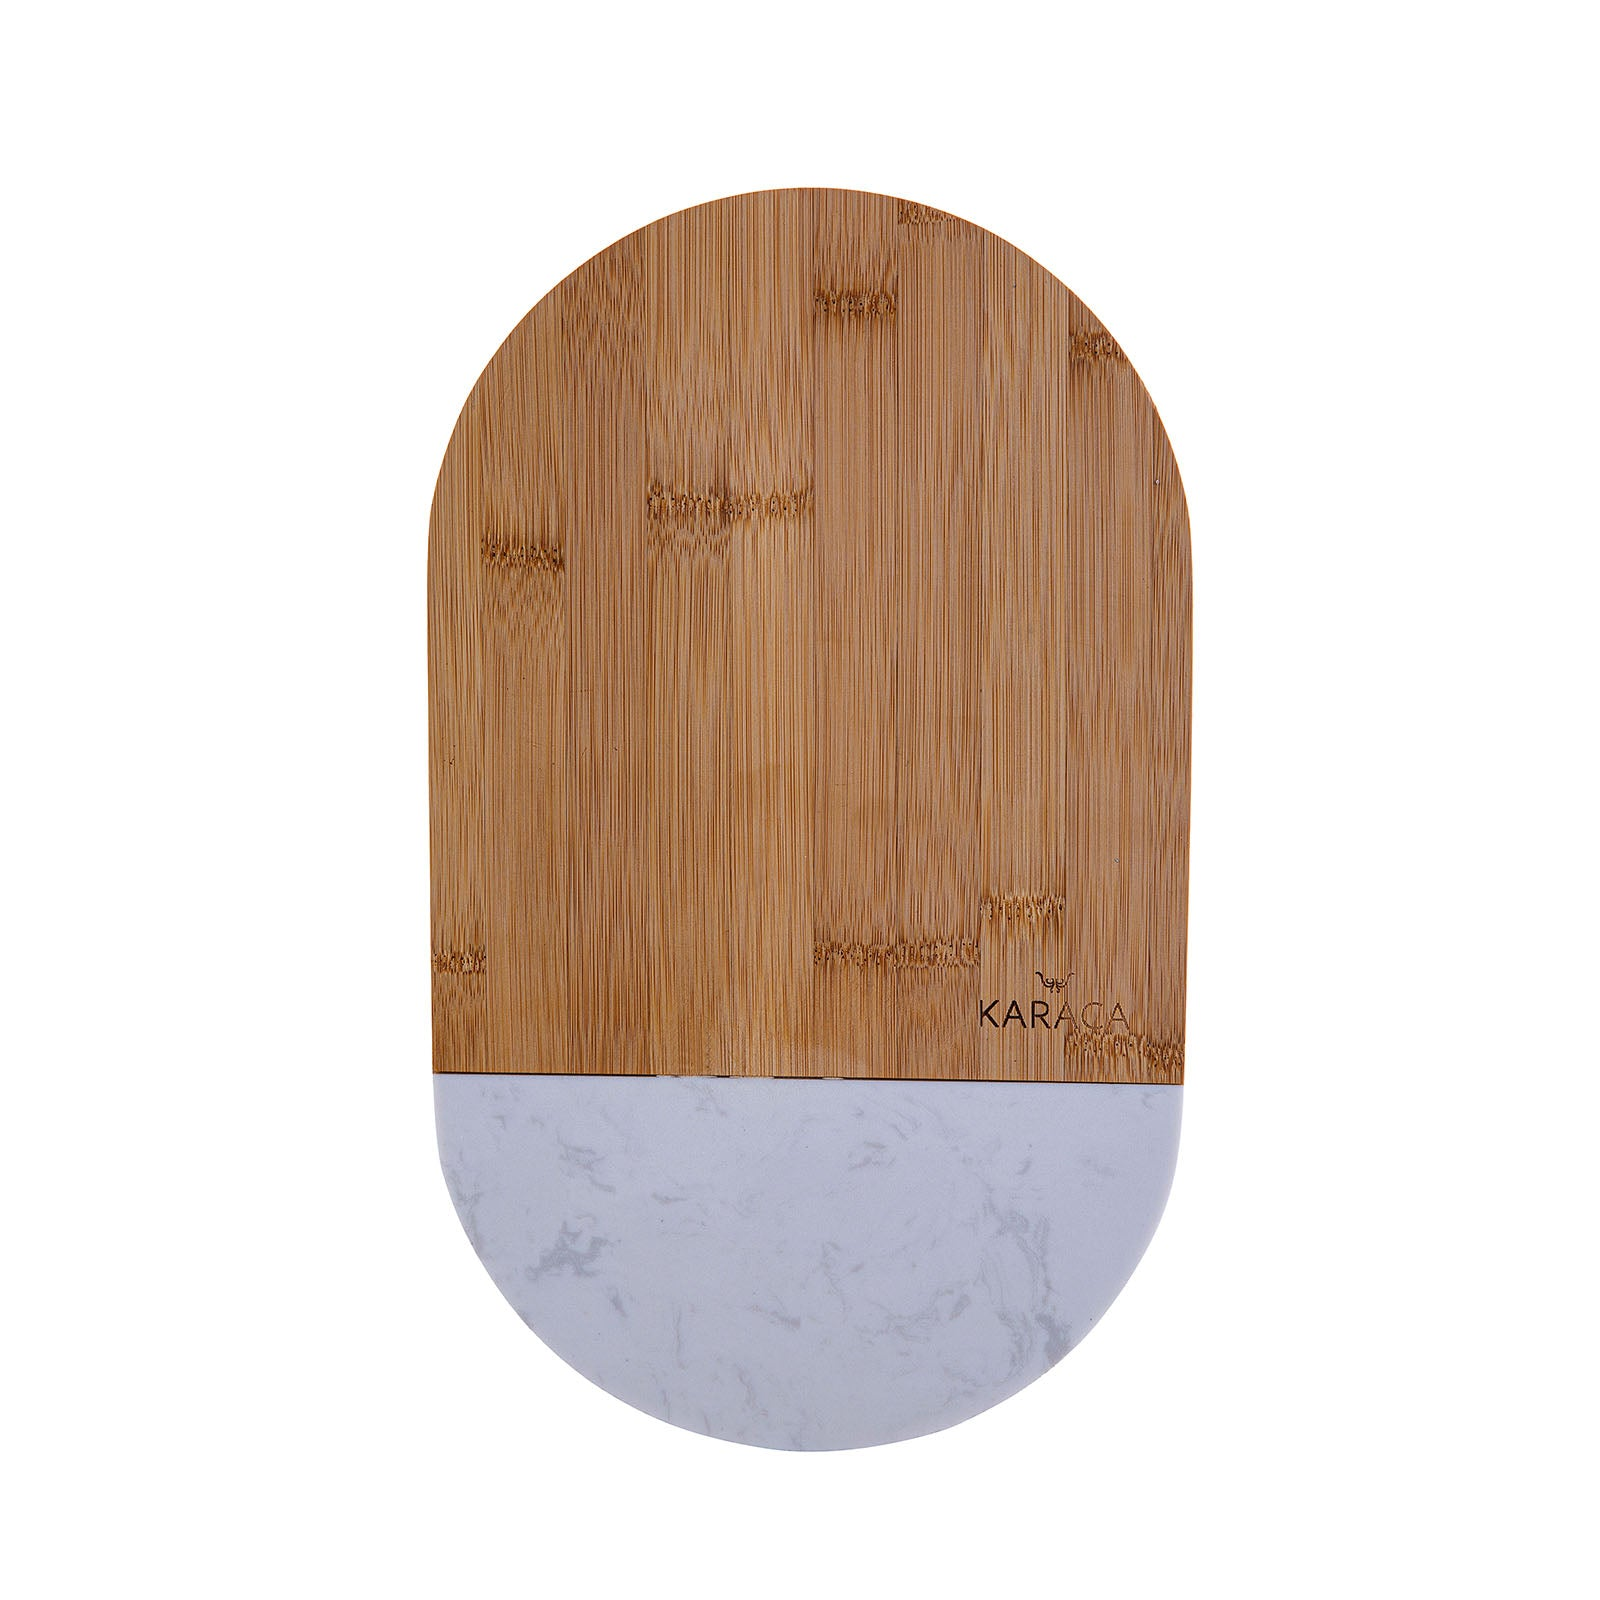 Karaca Spin Cutting Board-M 153.03.07.8905